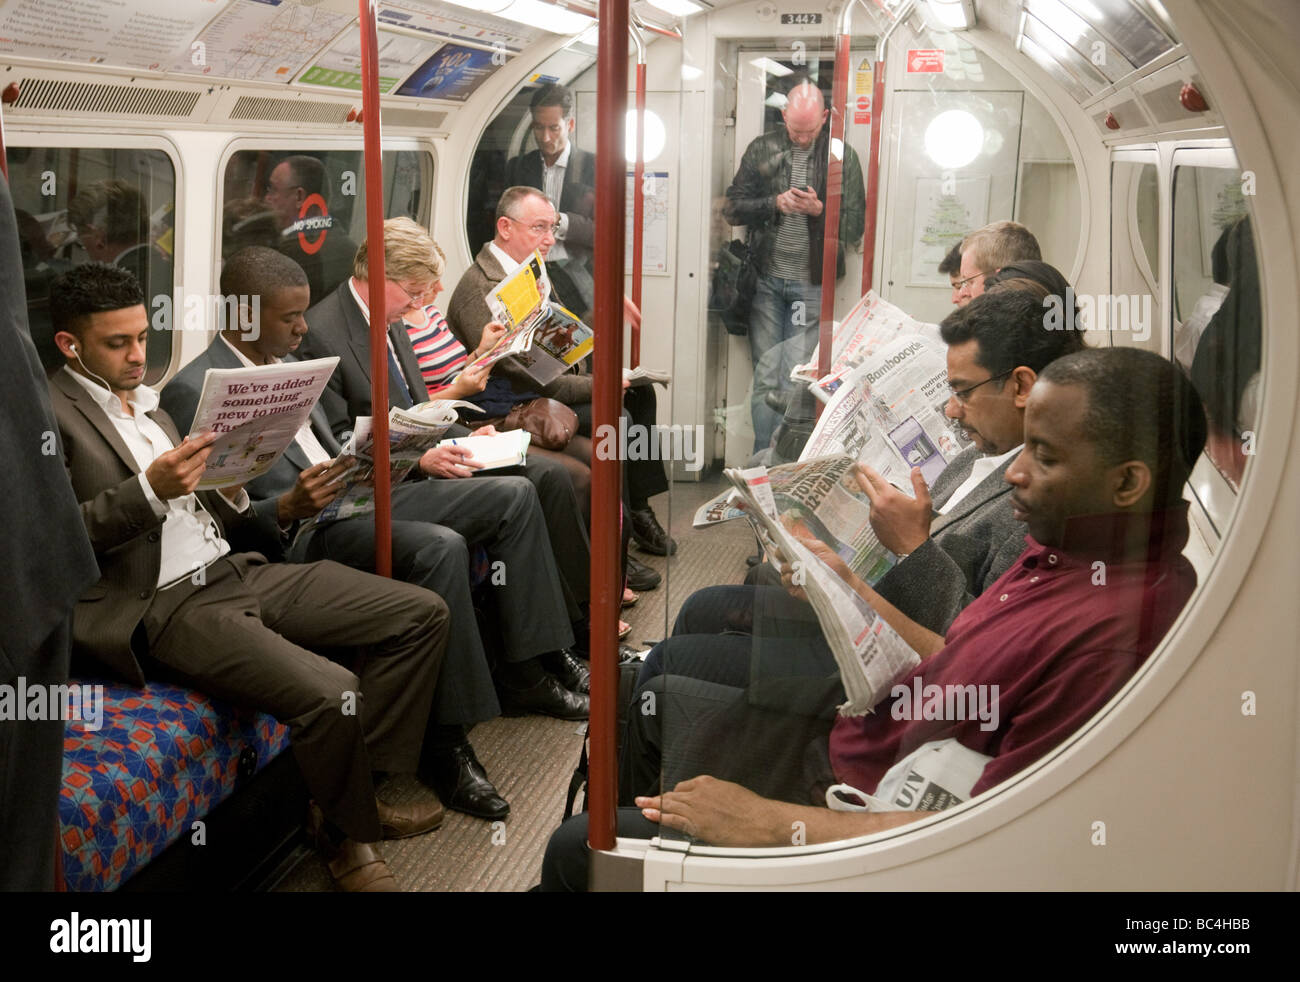 people sitting in the interior of a carriage on a london underground stock photo royalty free. Black Bedroom Furniture Sets. Home Design Ideas